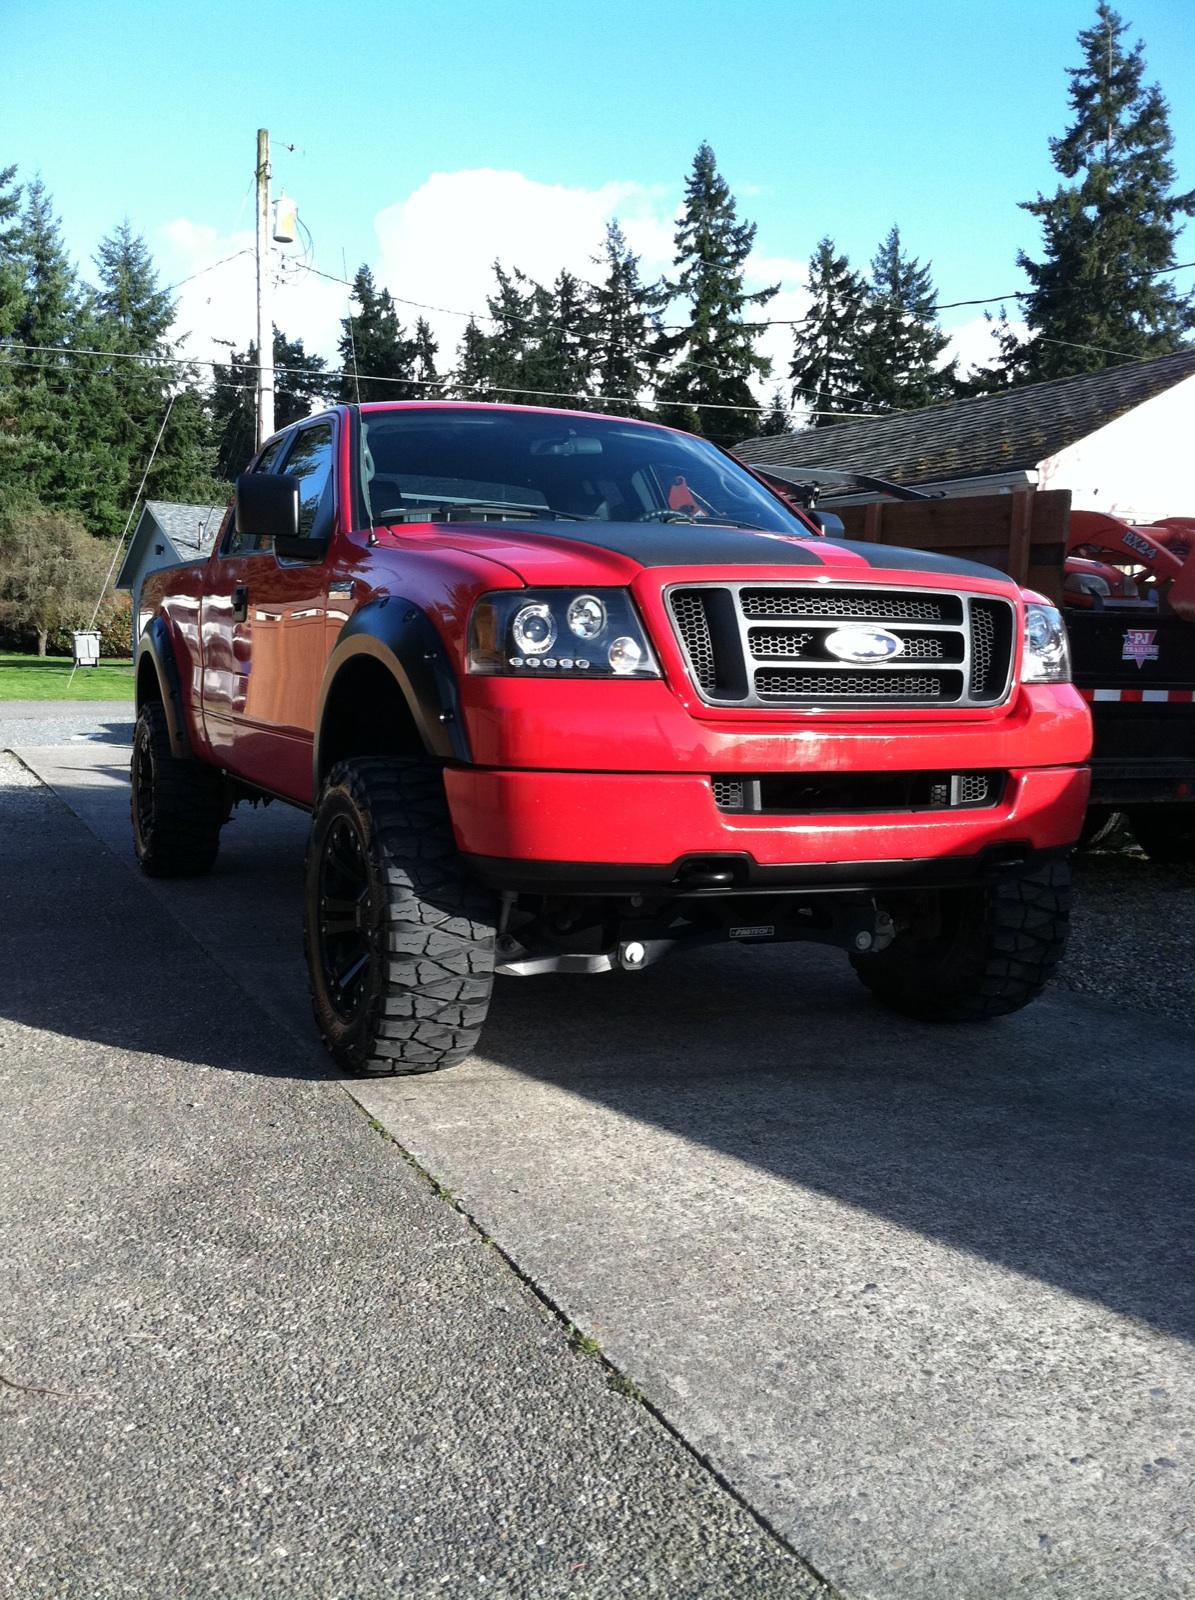 lieferson 2005 ford f150 super cabstx styleside pickup 4d 6 1 2 ft specs photos modification. Black Bedroom Furniture Sets. Home Design Ideas